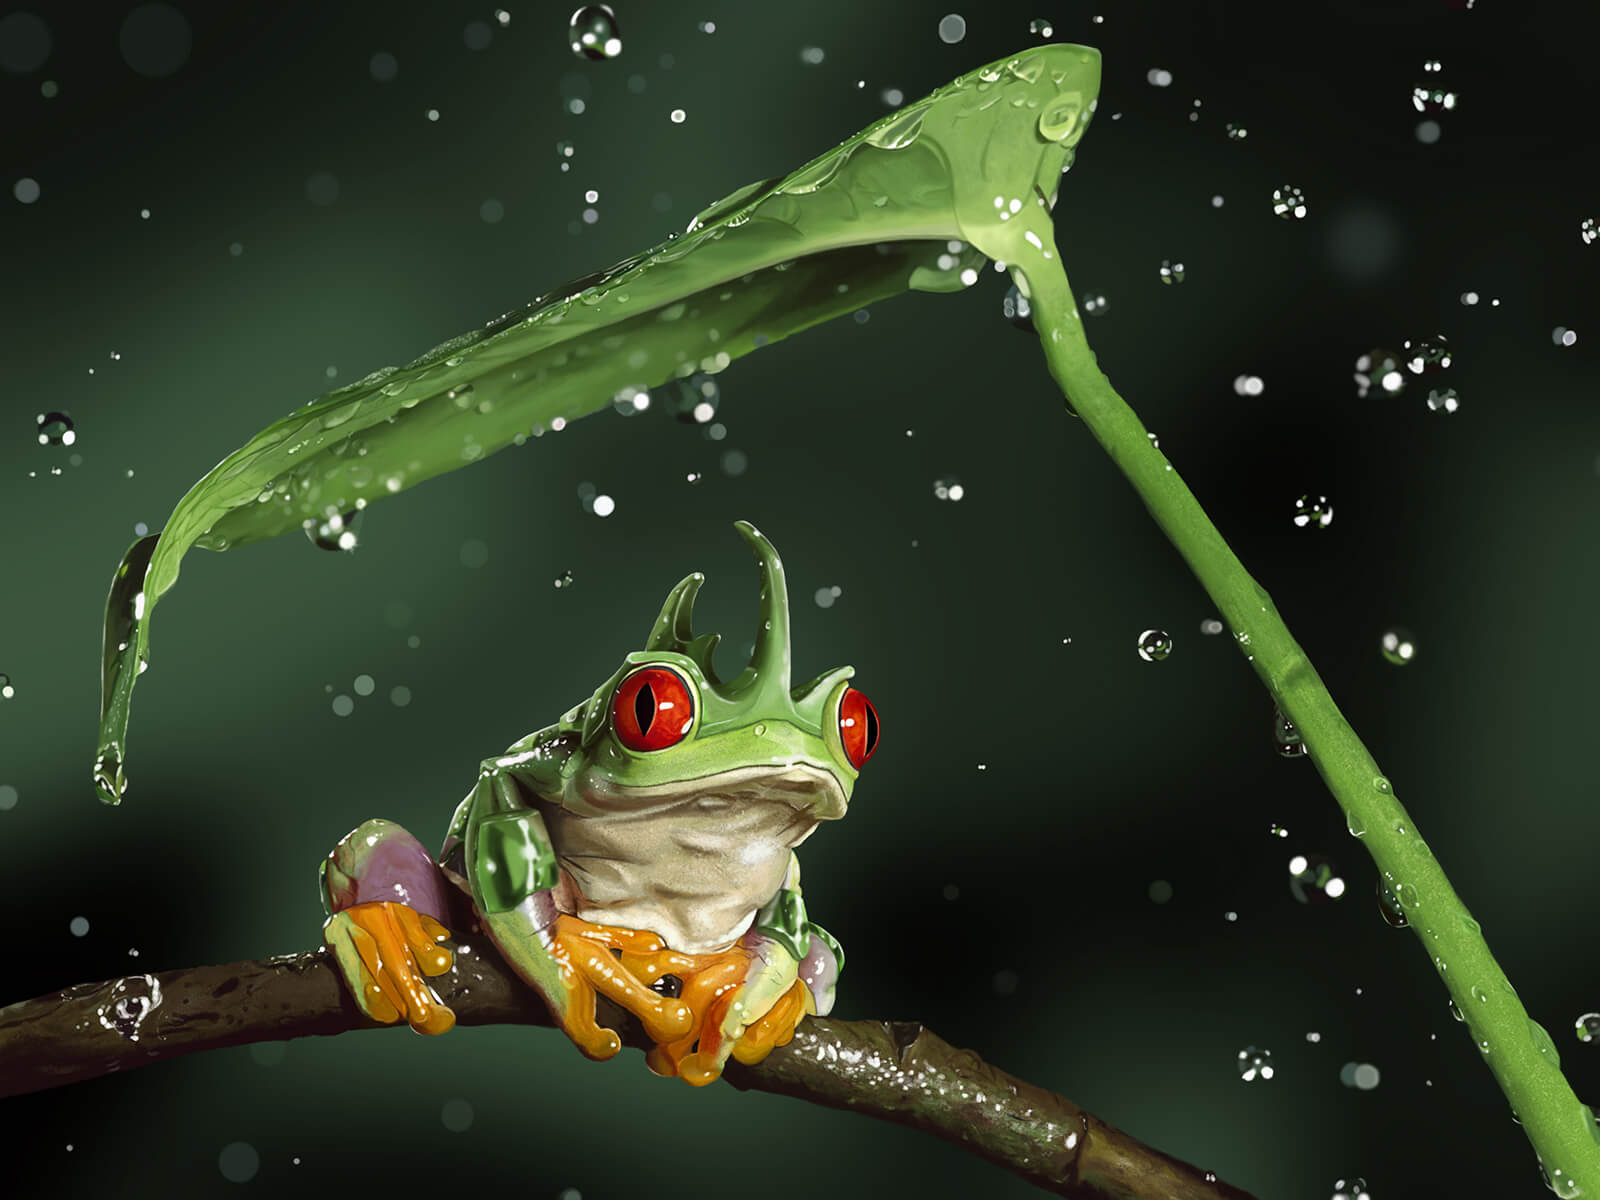 A red-eyed, green-horned tropical frog sits on a branch as a leaf shields it from relatively massive falling raindrops.